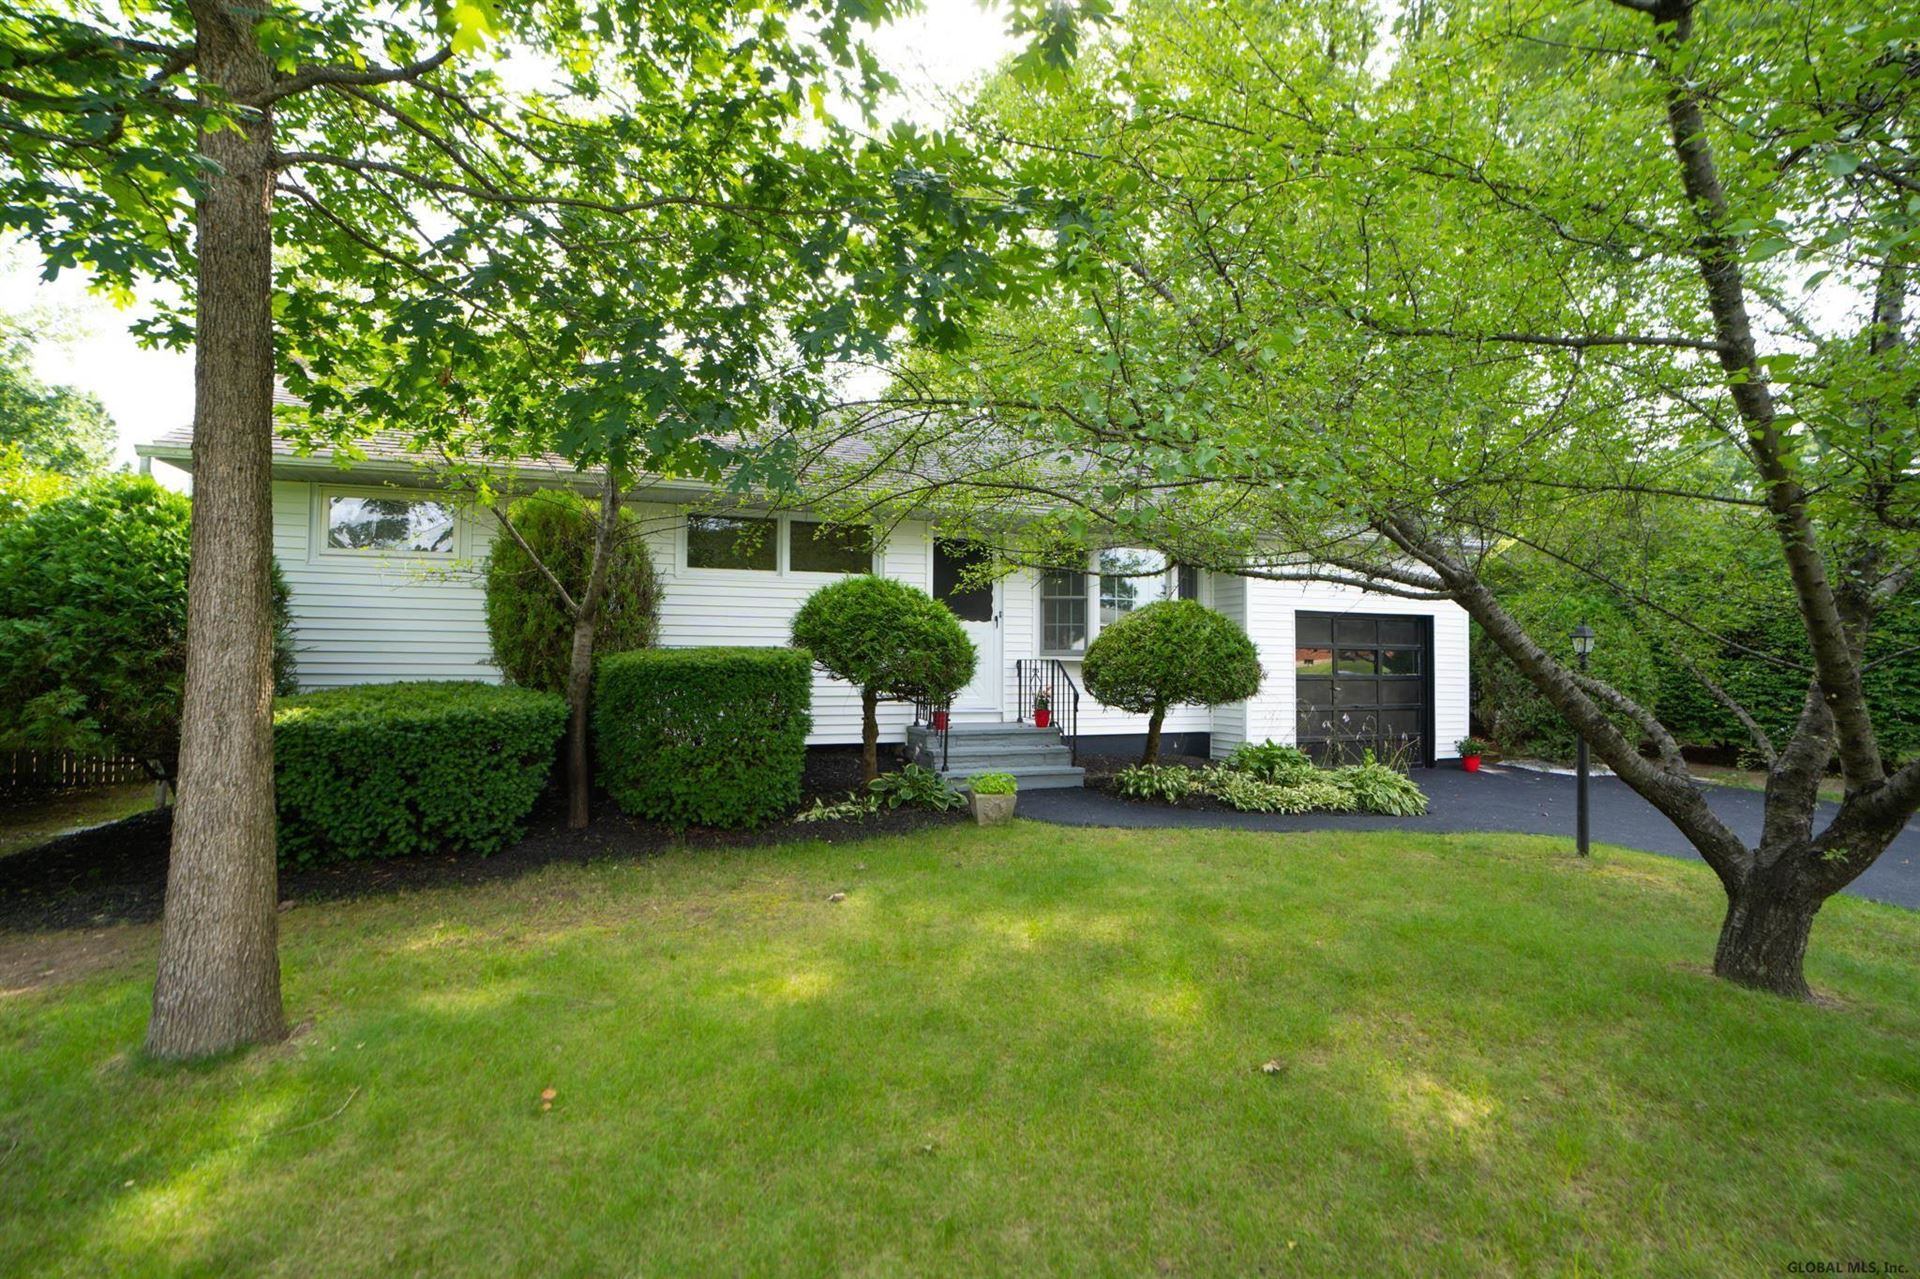 35 CHATEAU CT, Colonie, NY 12211 - #: 202124586